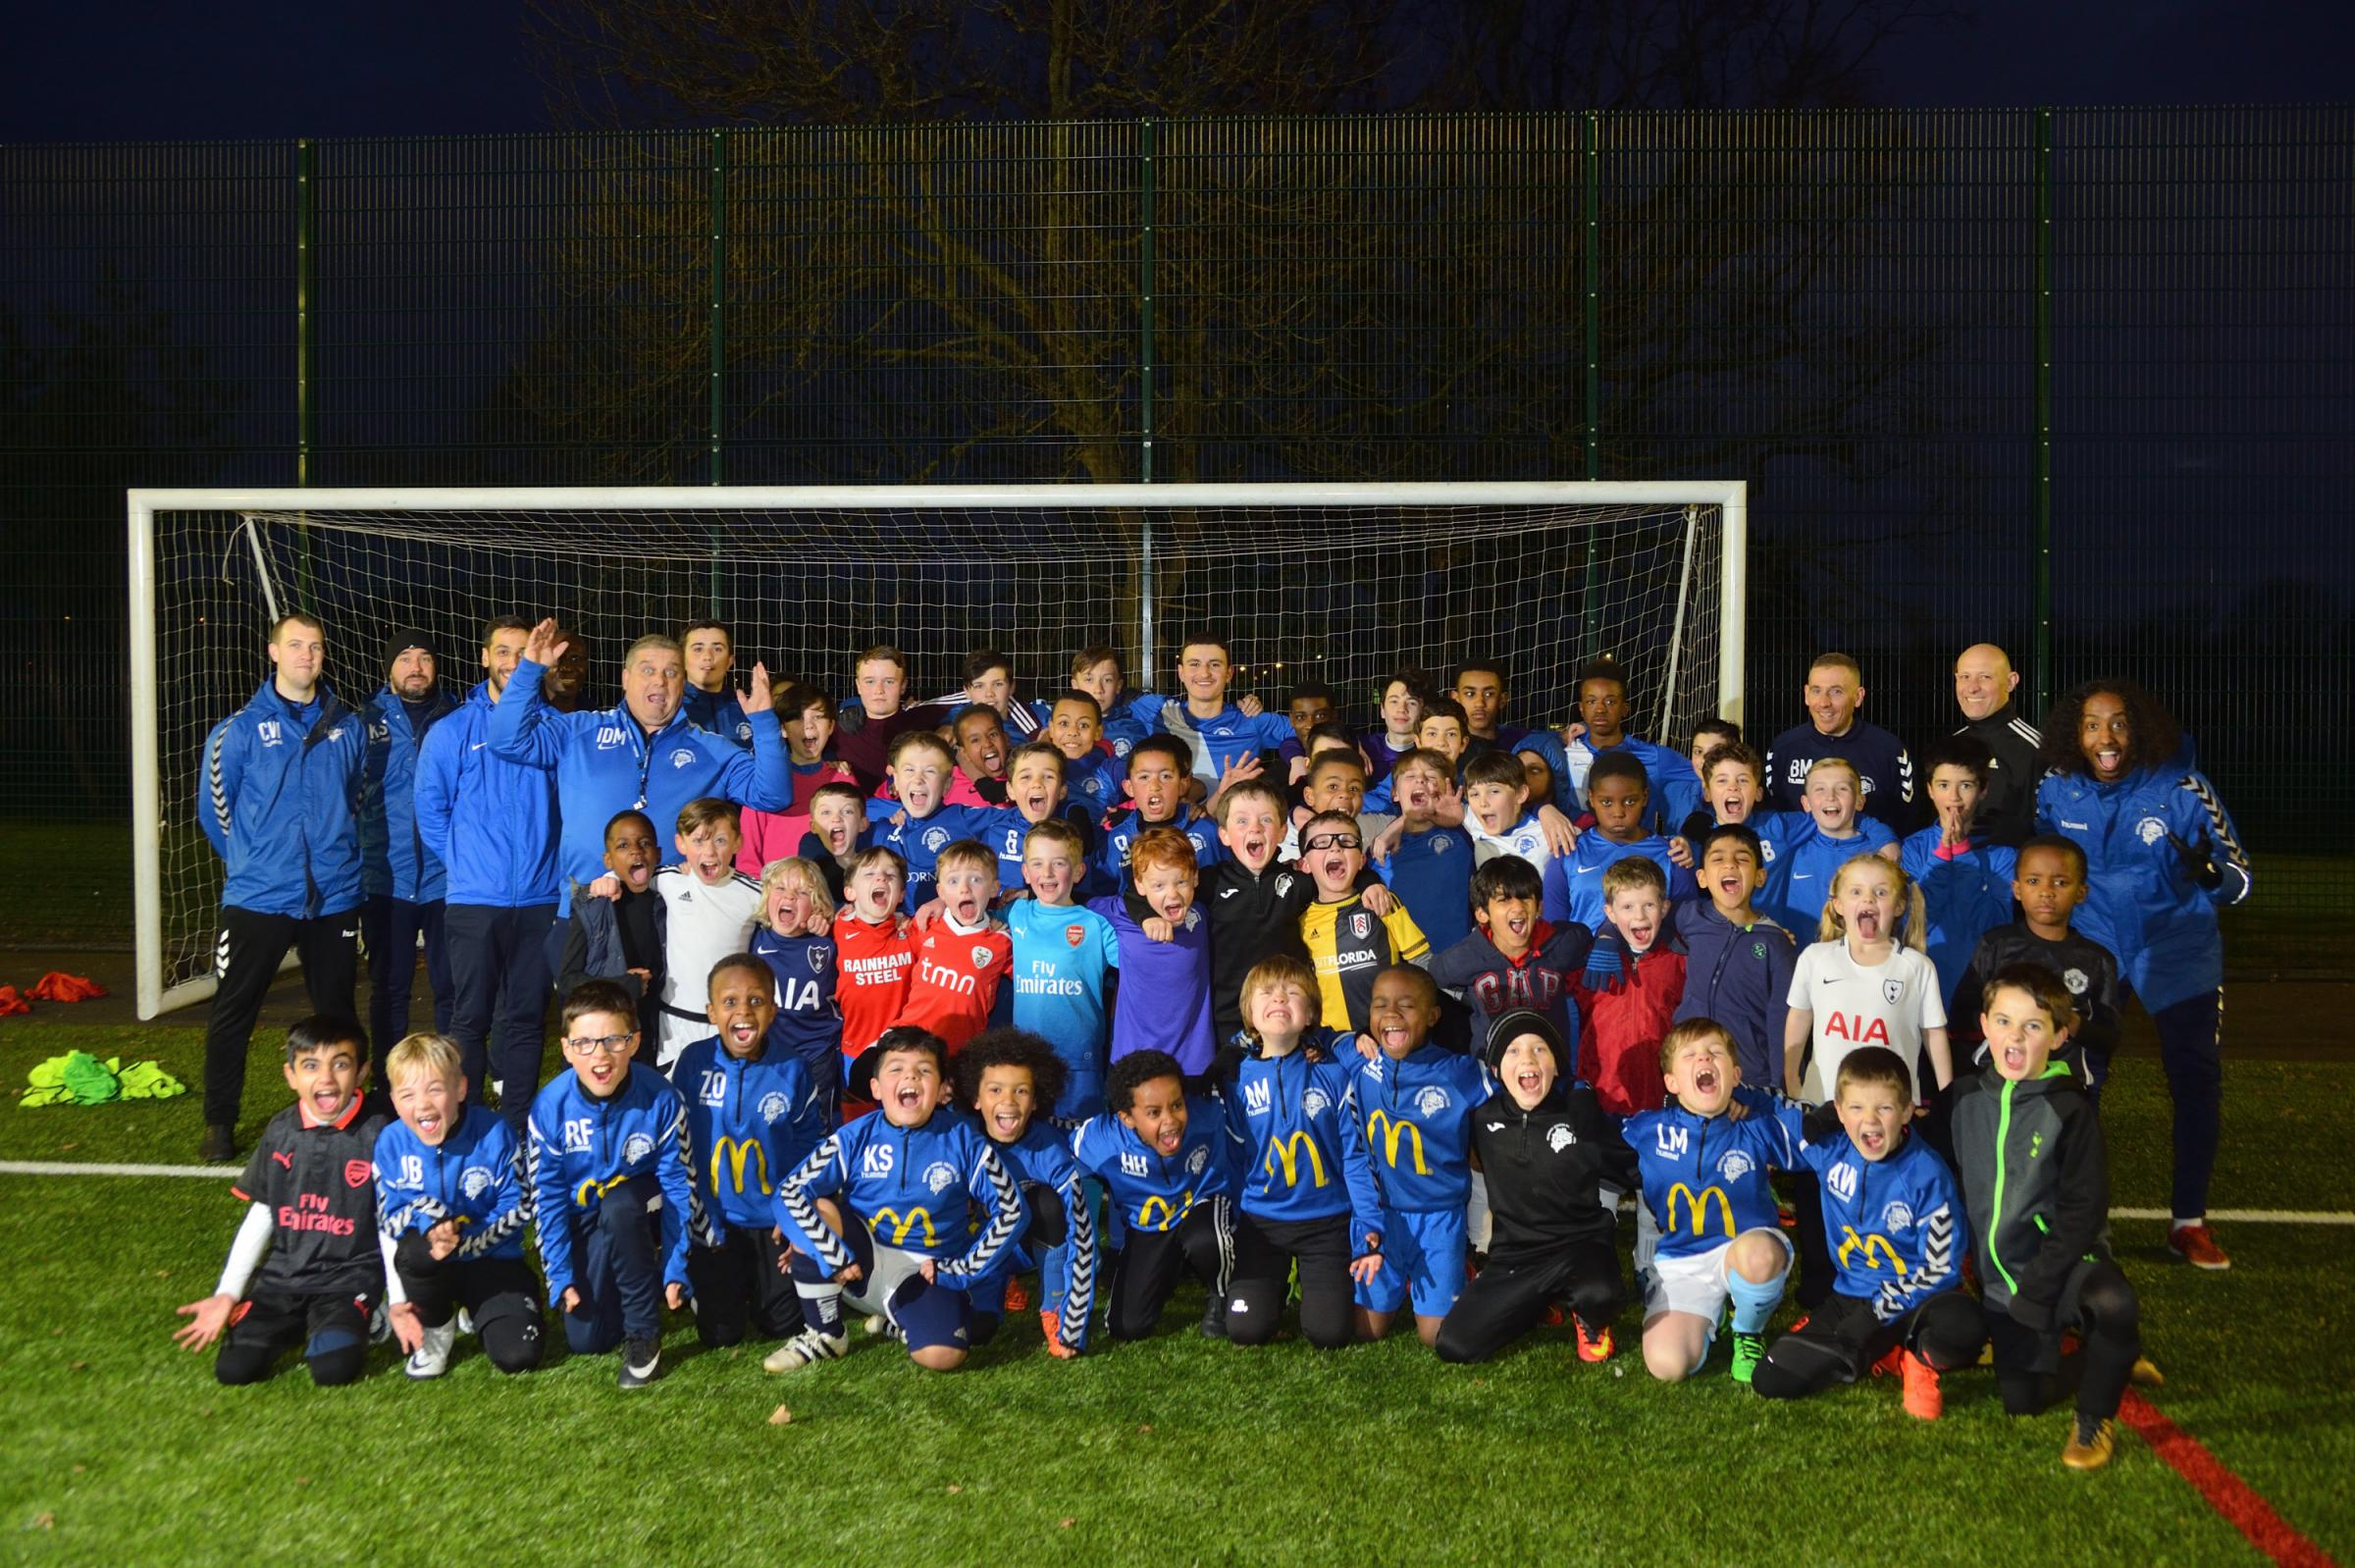 Ridgeway Rovers players and coaches at Peter May Sports Center, Walthamstow. (6/3/2018) EL91905_02